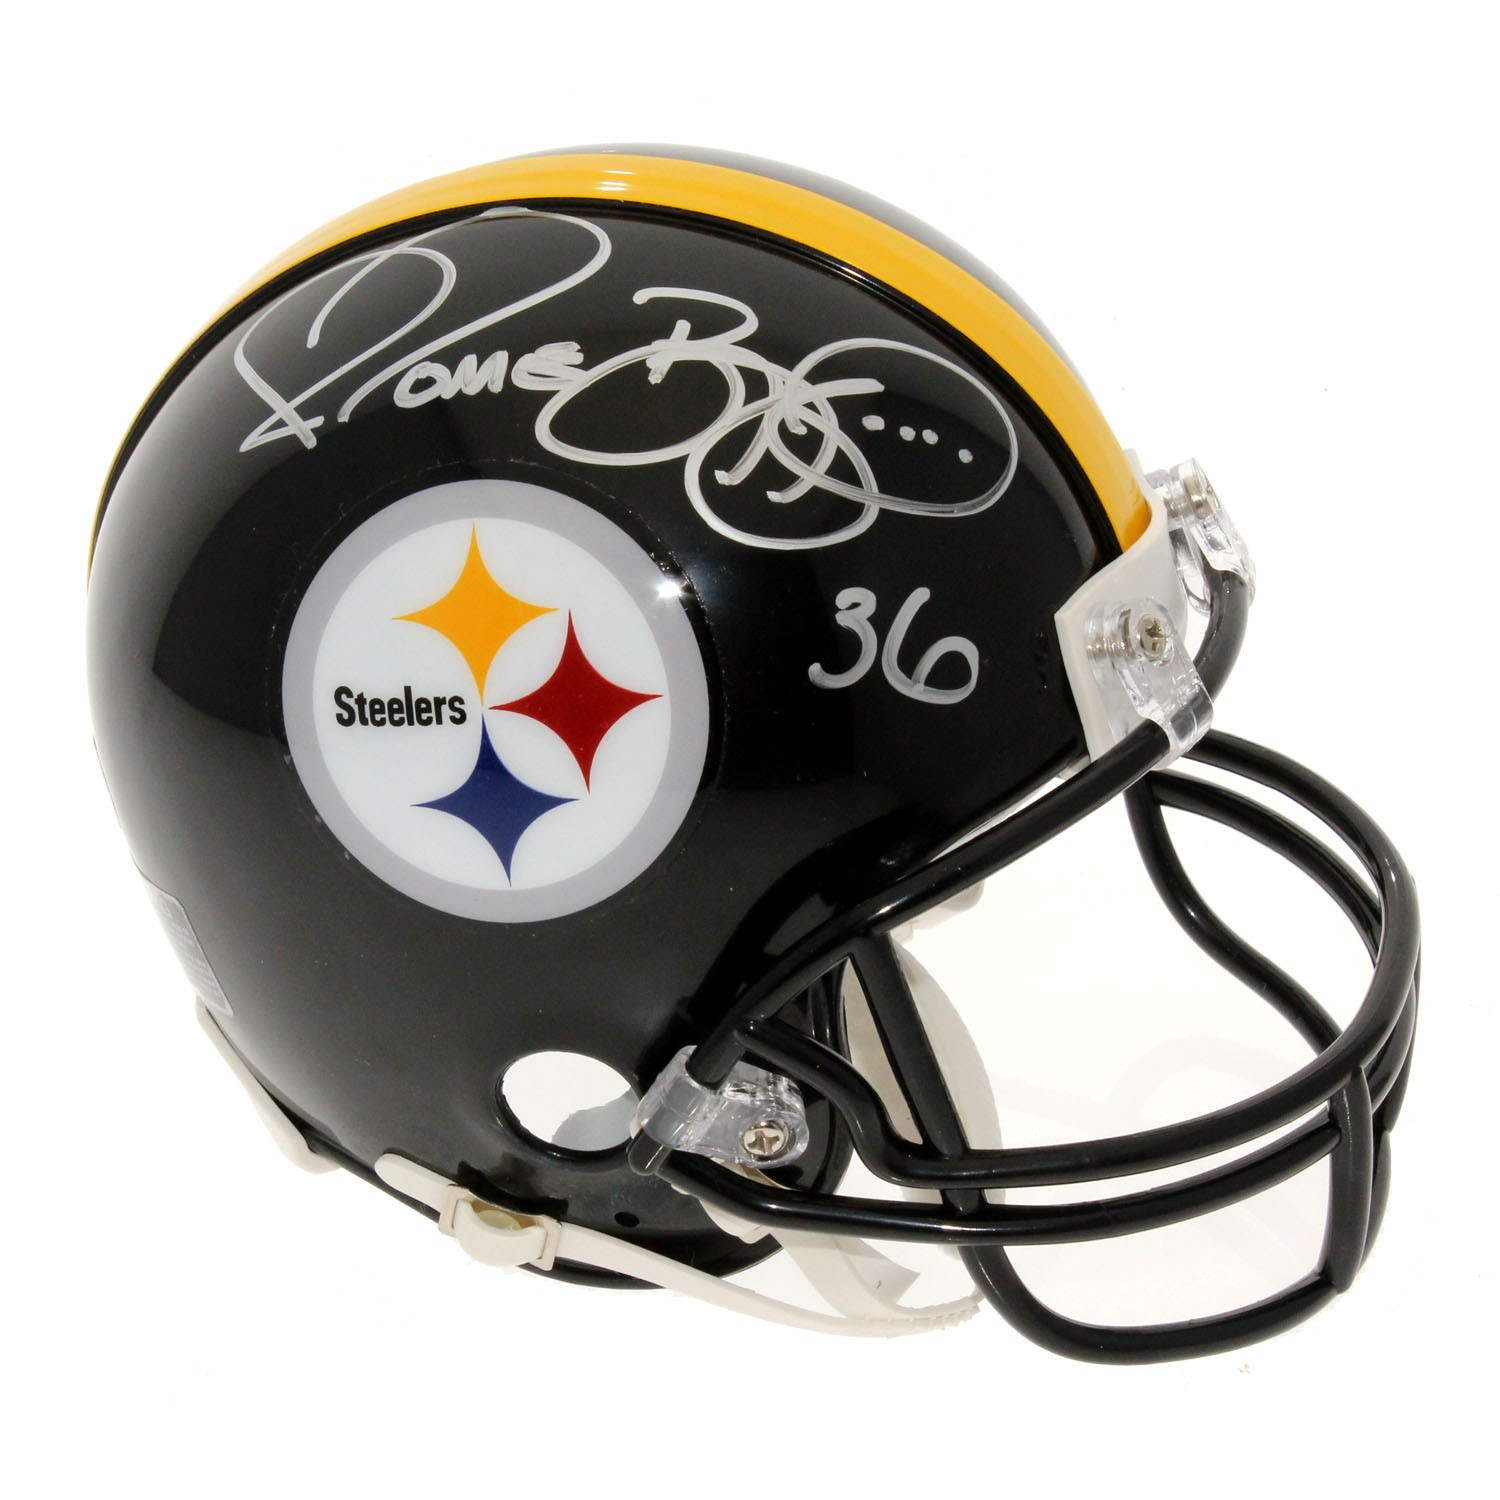 8676423122a Jerome Bettis Autographed Signed Pittsburgh Steelers Mini Helmet - PSA DNA  Certified Authentic